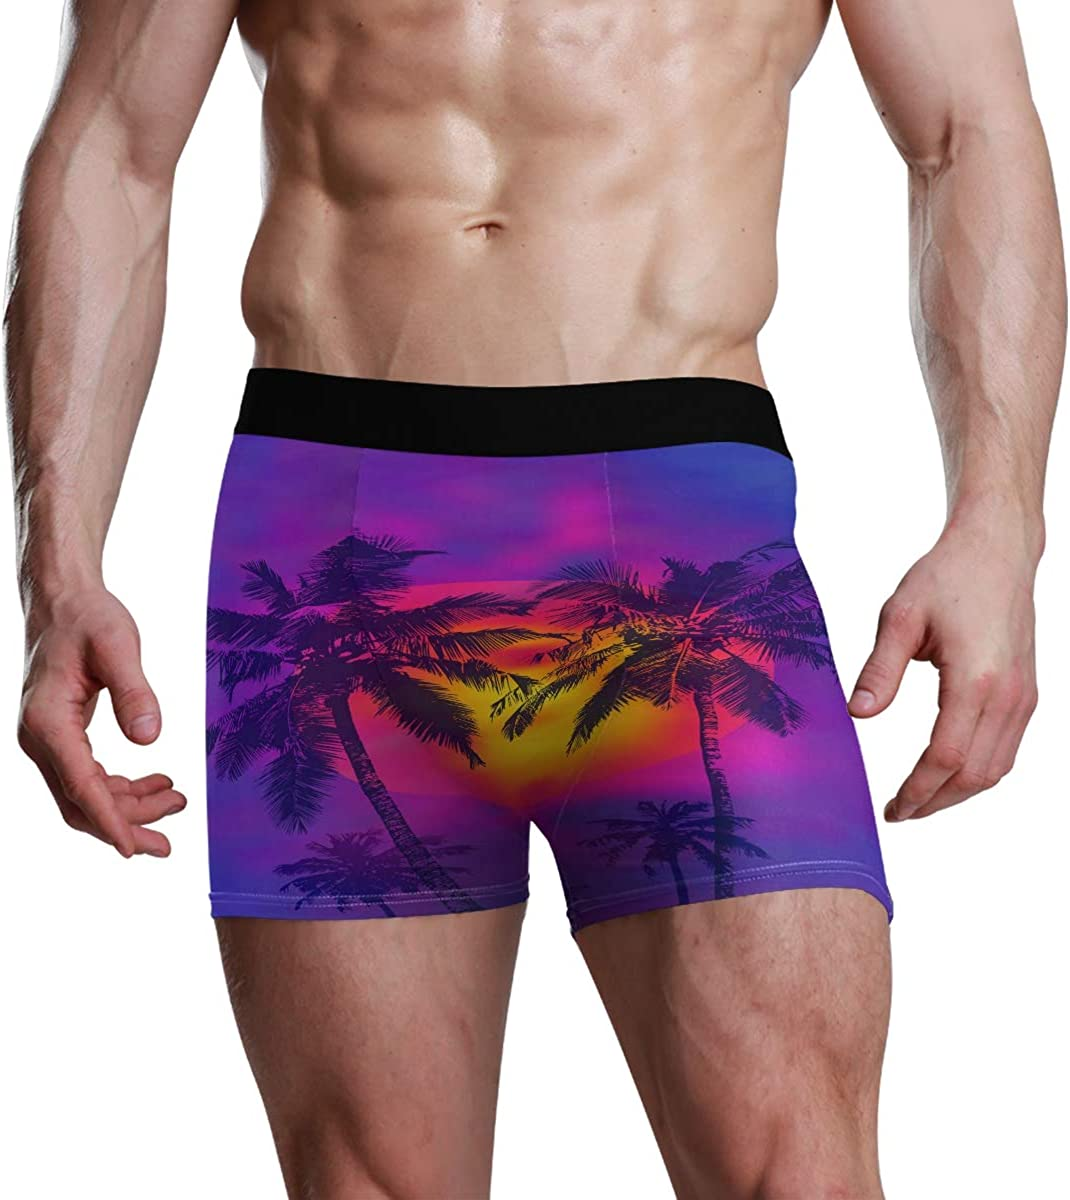 Mens Underwear Briefs Tropical Sunset and Full Moon Breathable Long Boxer Briefs Underwear Boys